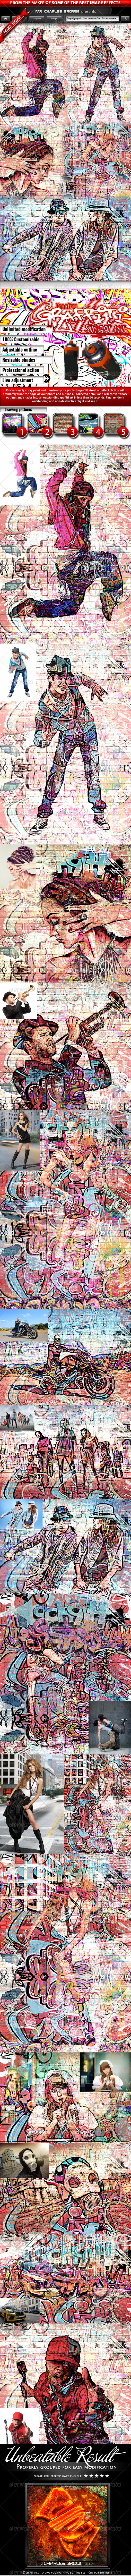 Creative Graffiti Street Art - Photo Effects Actions